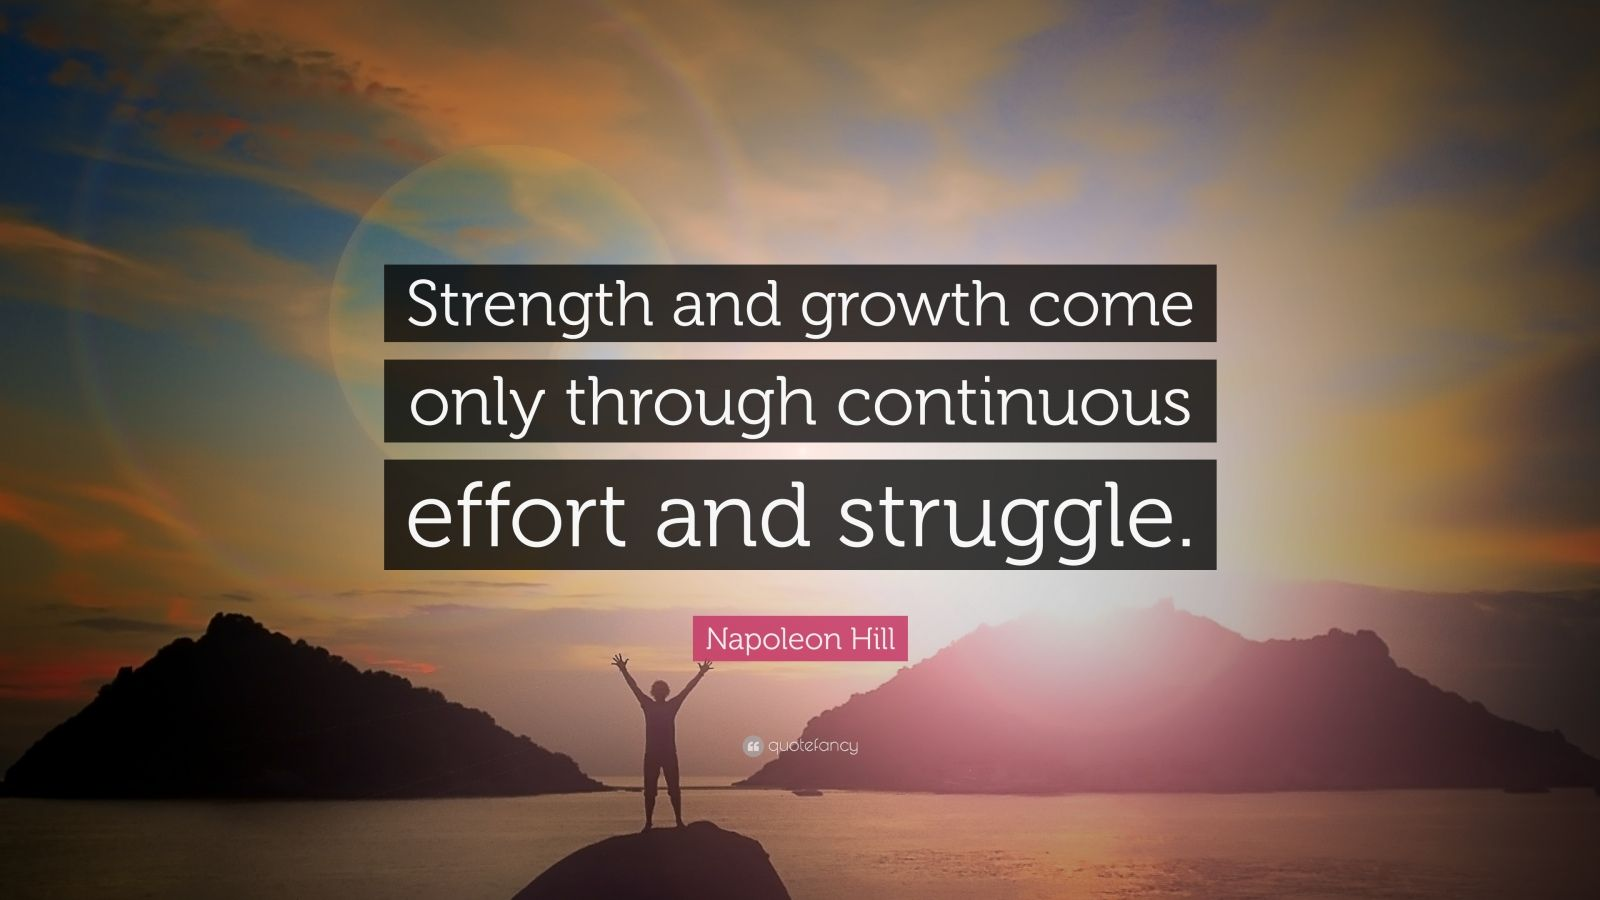 Business Success Quotes Wallpaper Napoleon Hill Quote Strength And Growth Come Only